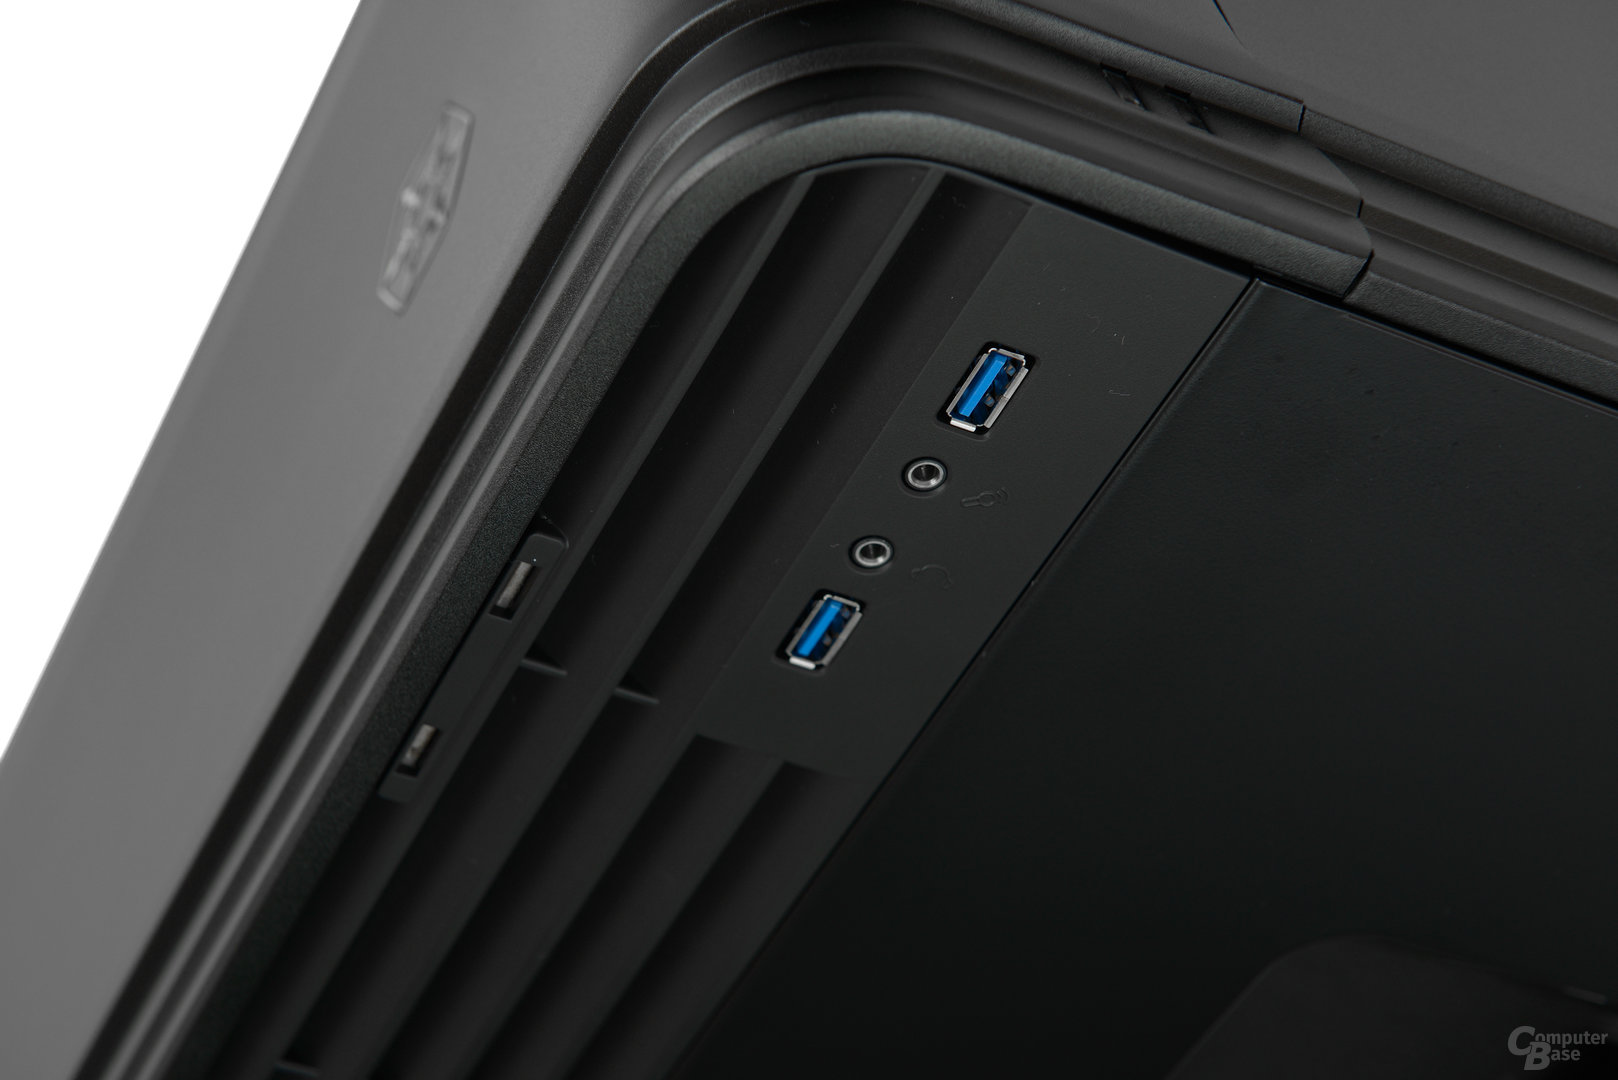 Silverstone Fortress 04 - Frontpanel